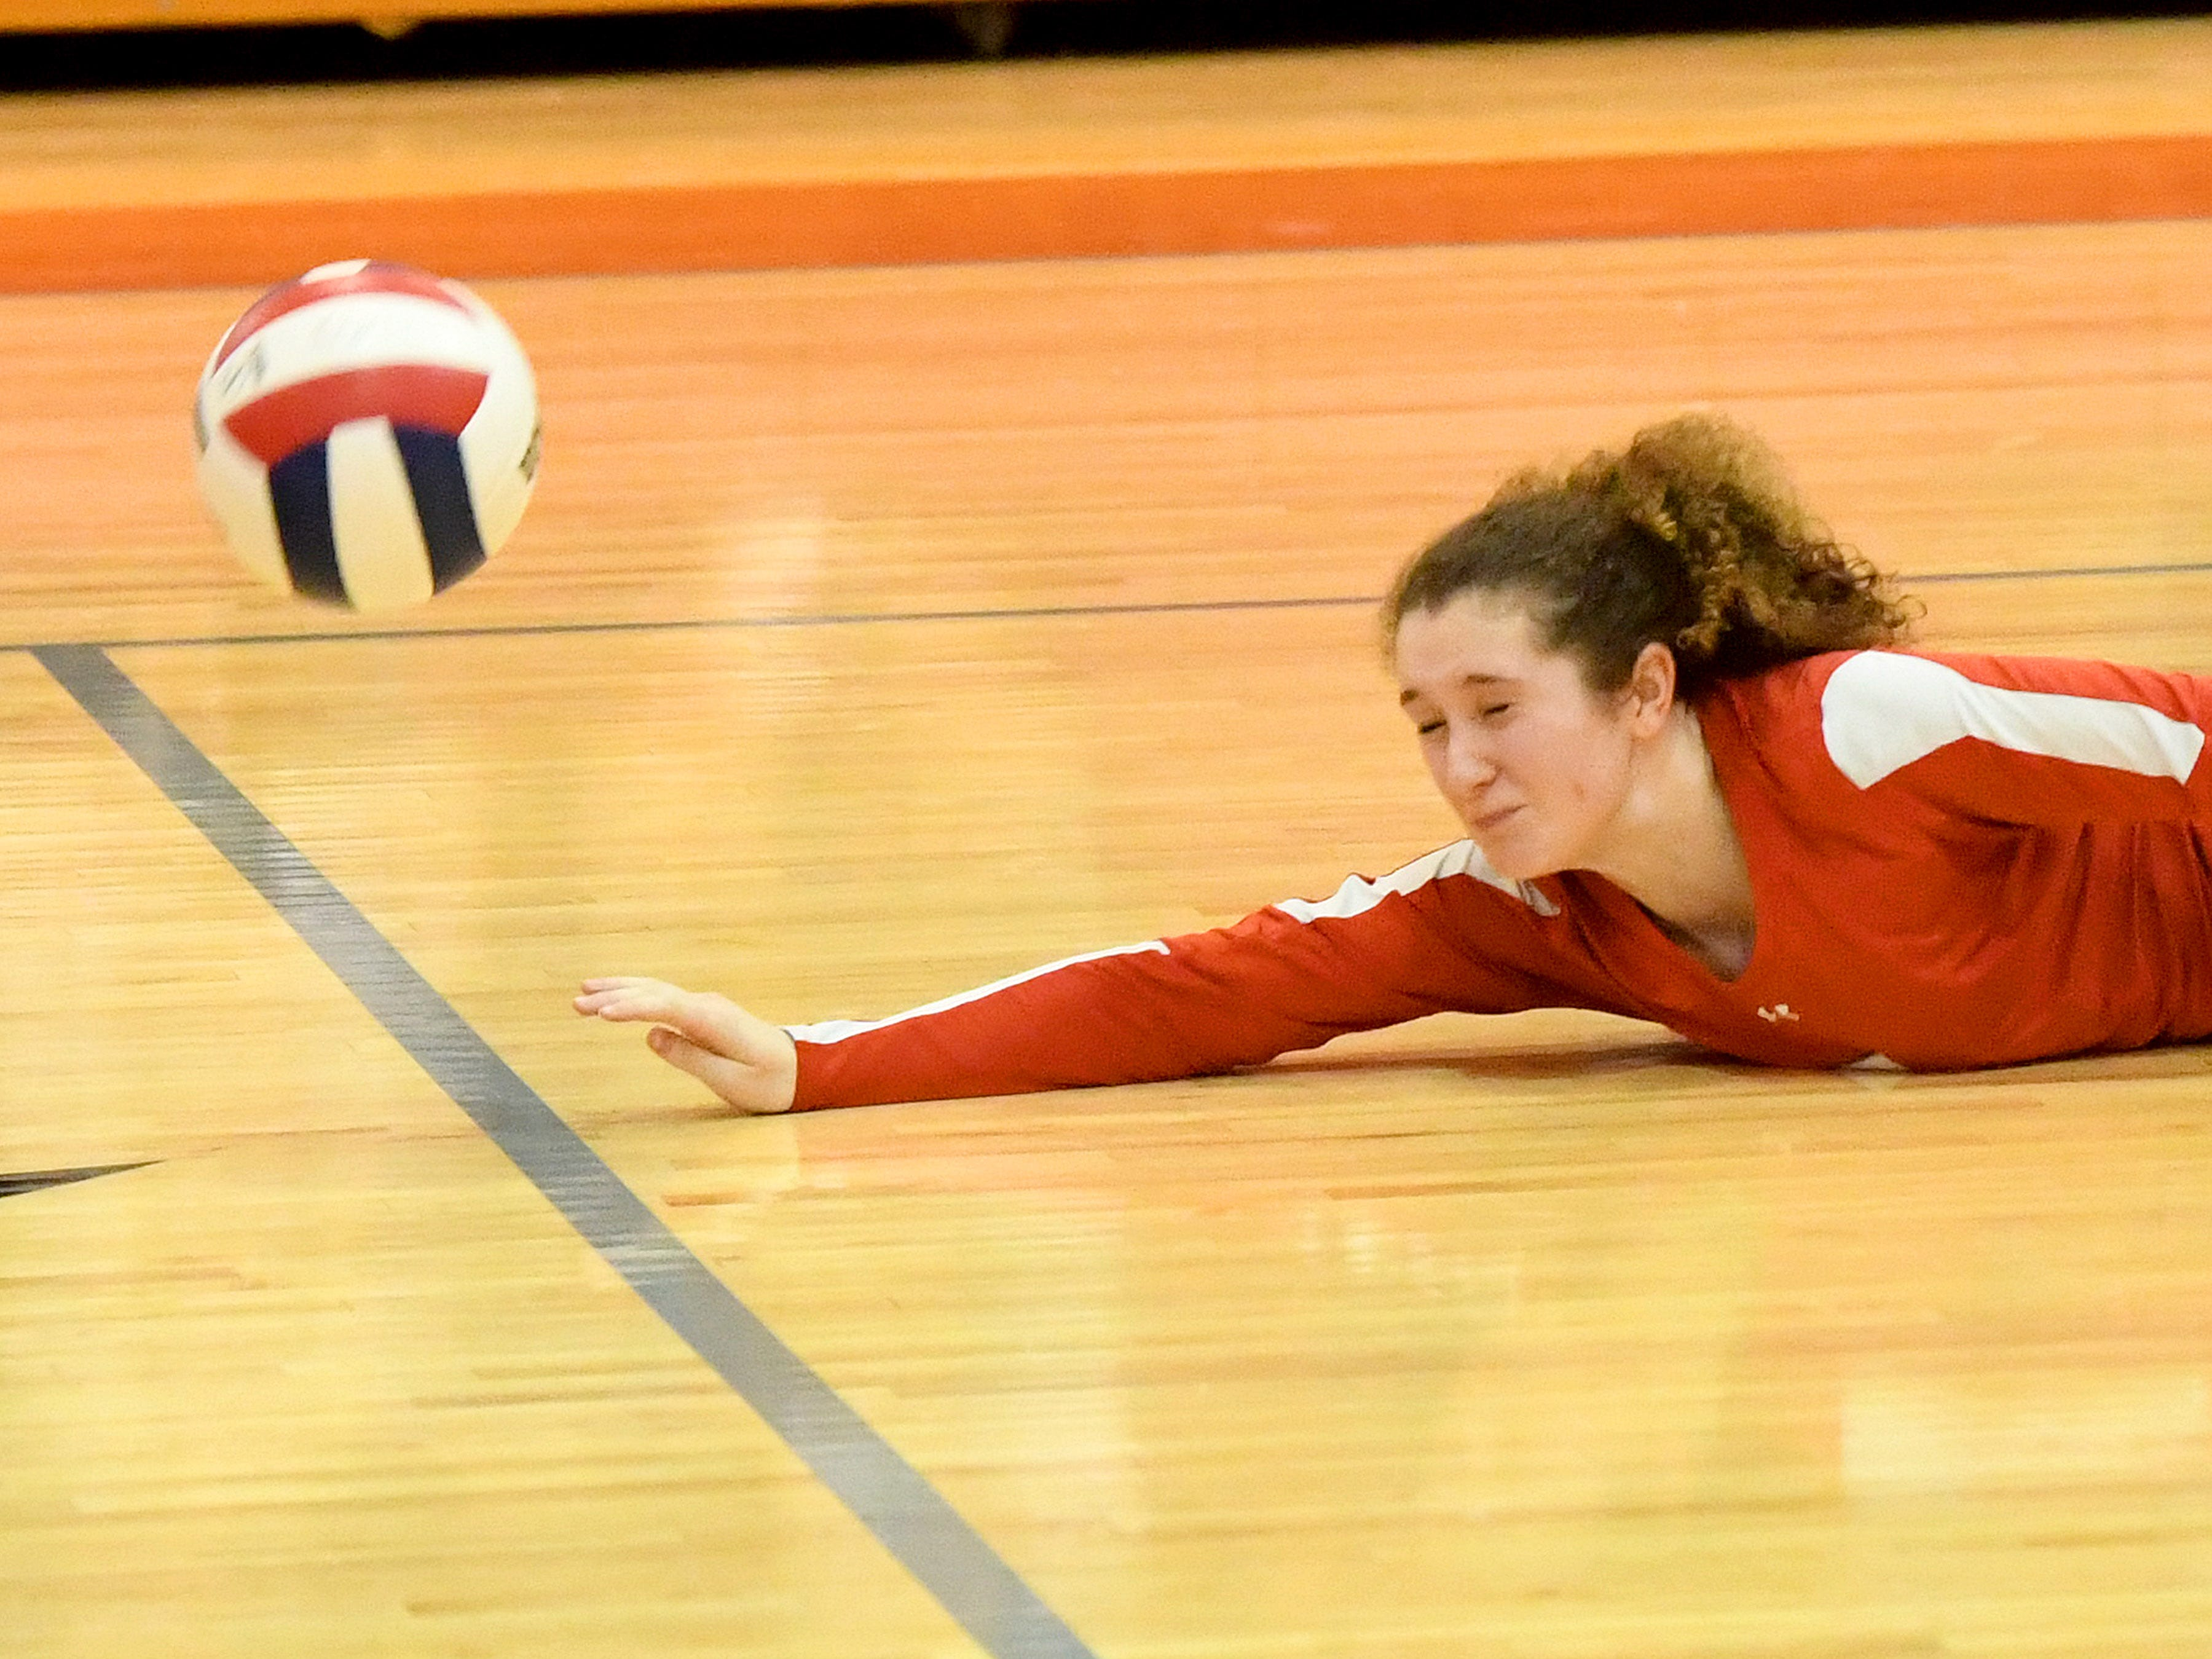 Riverheads' Gracie Fulton goes down trying to keep the ball in play during the Region 1B volleyball championship played in Greenville on Wednesday, Nov. 7, 2018.